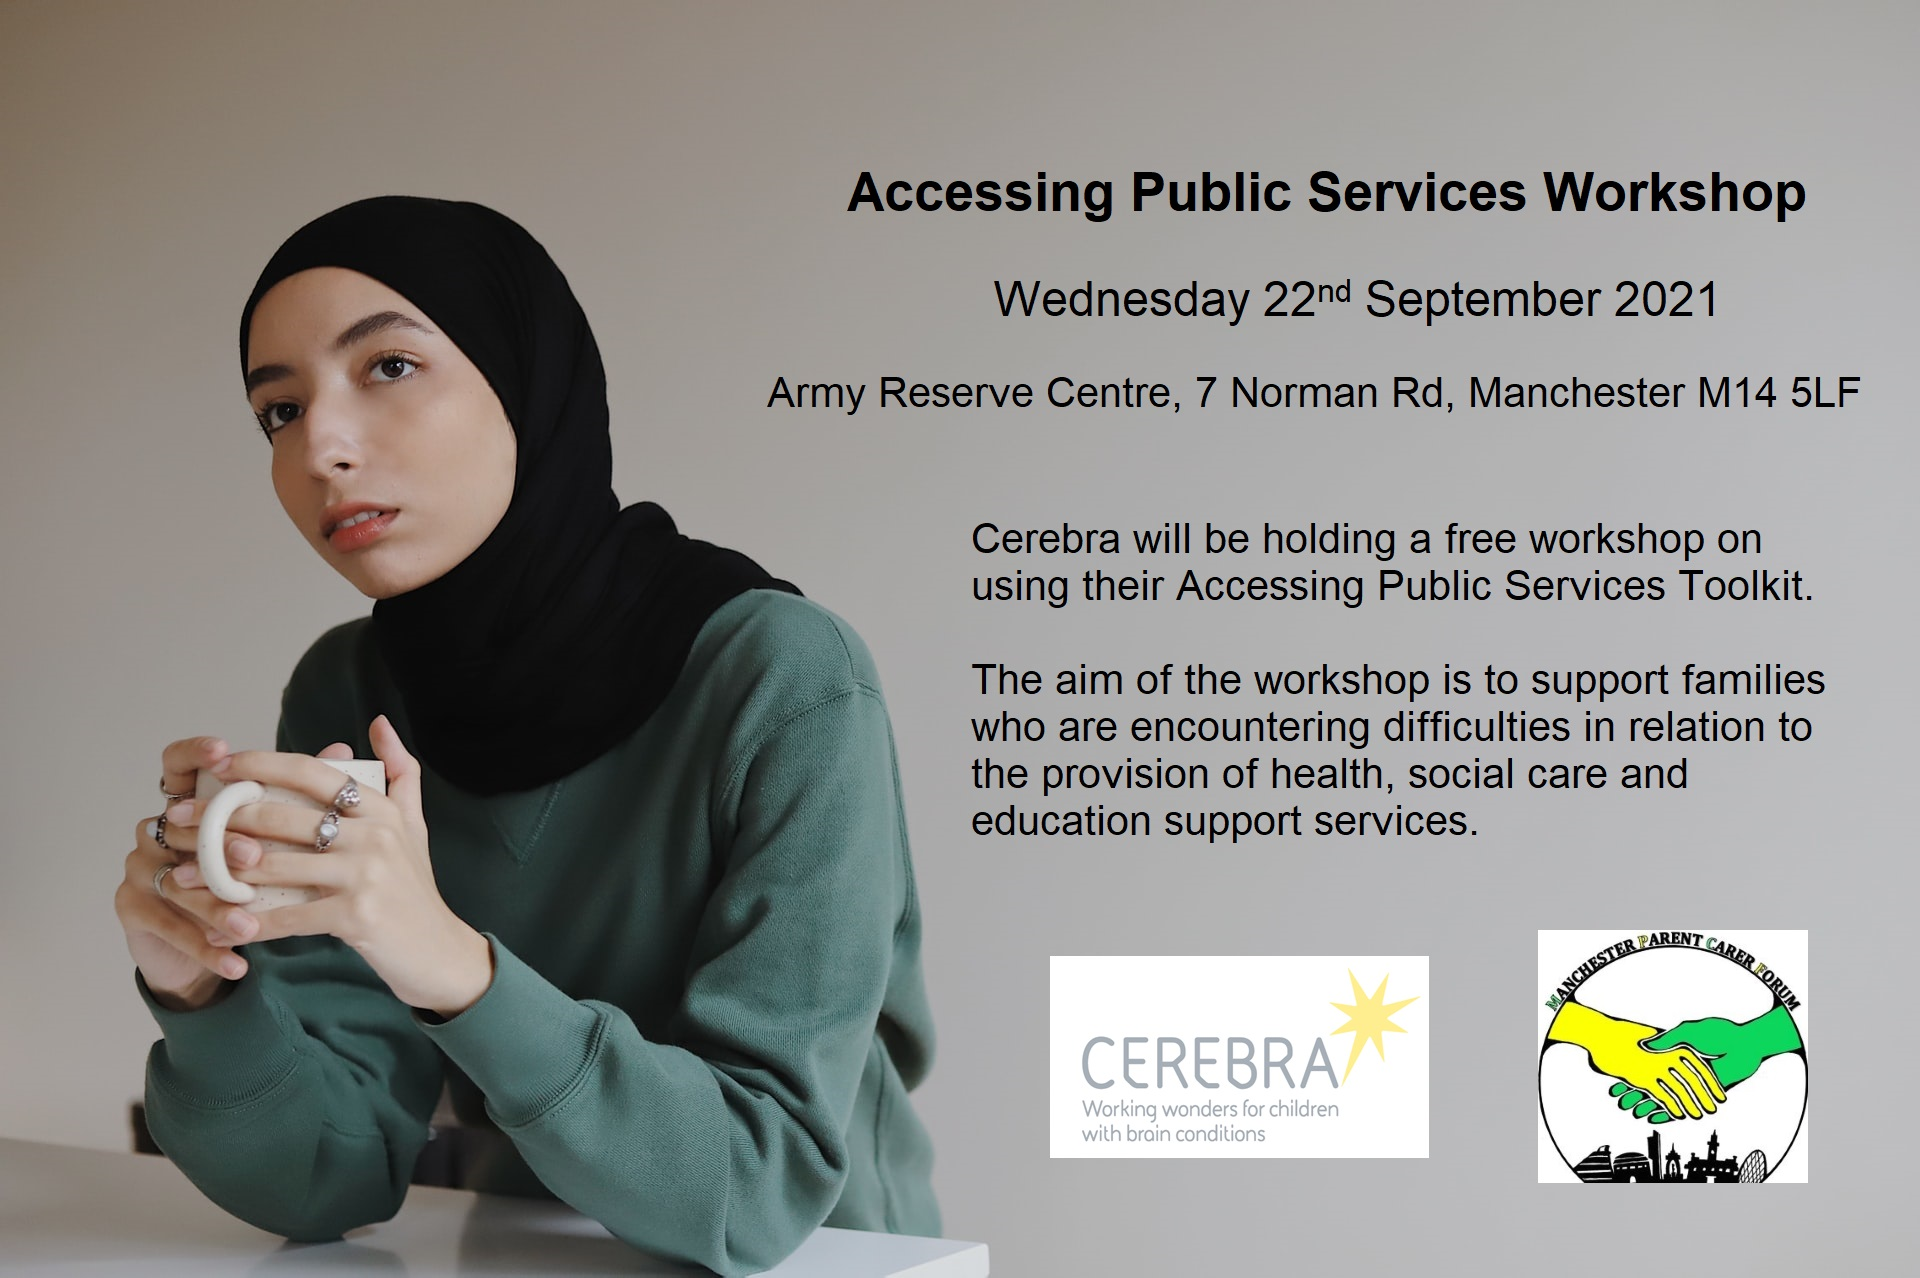 """The background is a photo of a woman wearing a hijab. The foreground shows the text, """"Cerebra will be holding a free workshop on using their Accessing Public Services Toolkit. The aim of the workshop is to support families who are encountering difficulties in relation to the provision of health, social care and education support services."""" as well as the event details (date and venue). 